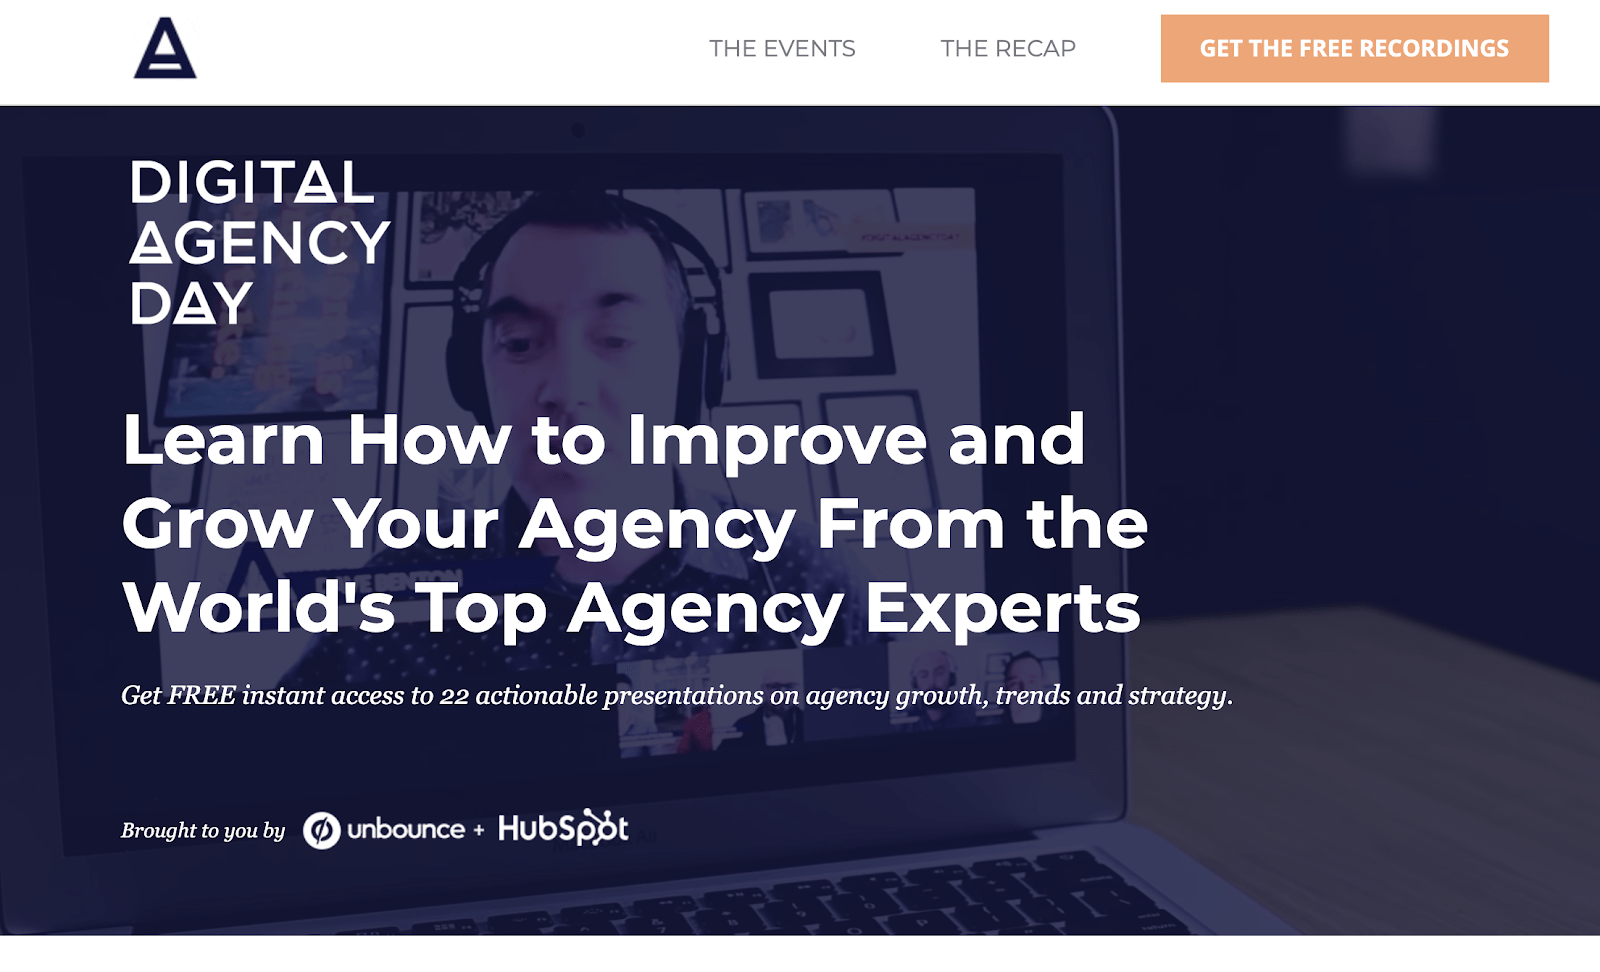 A webinar example by Unbounce: Digital Agency Day